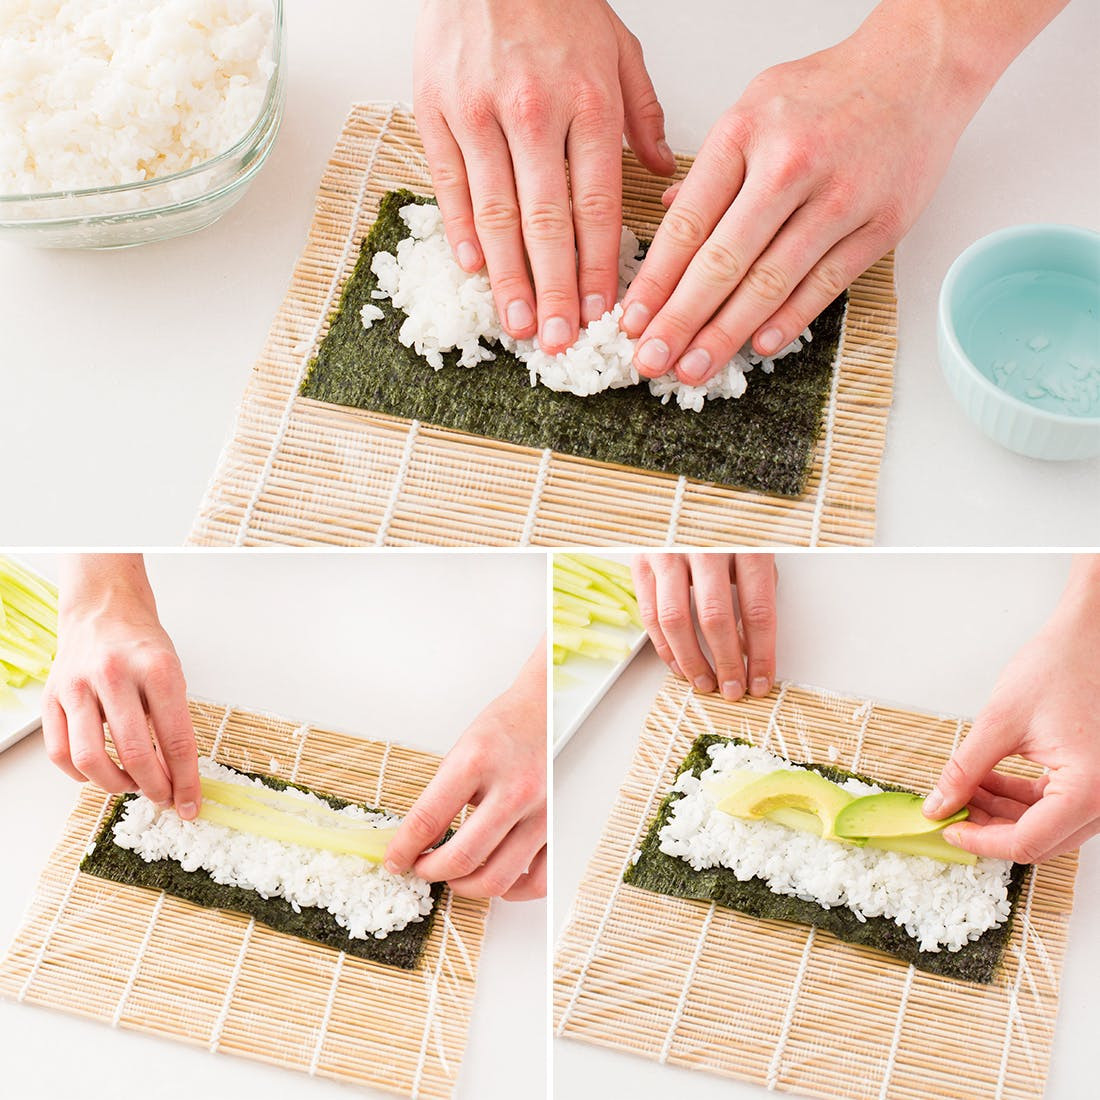 Best ideas about DIY Sushi Kit . Save or Pin The Ultimate Recipe to Making Sushi for Two for Under $30 Now.